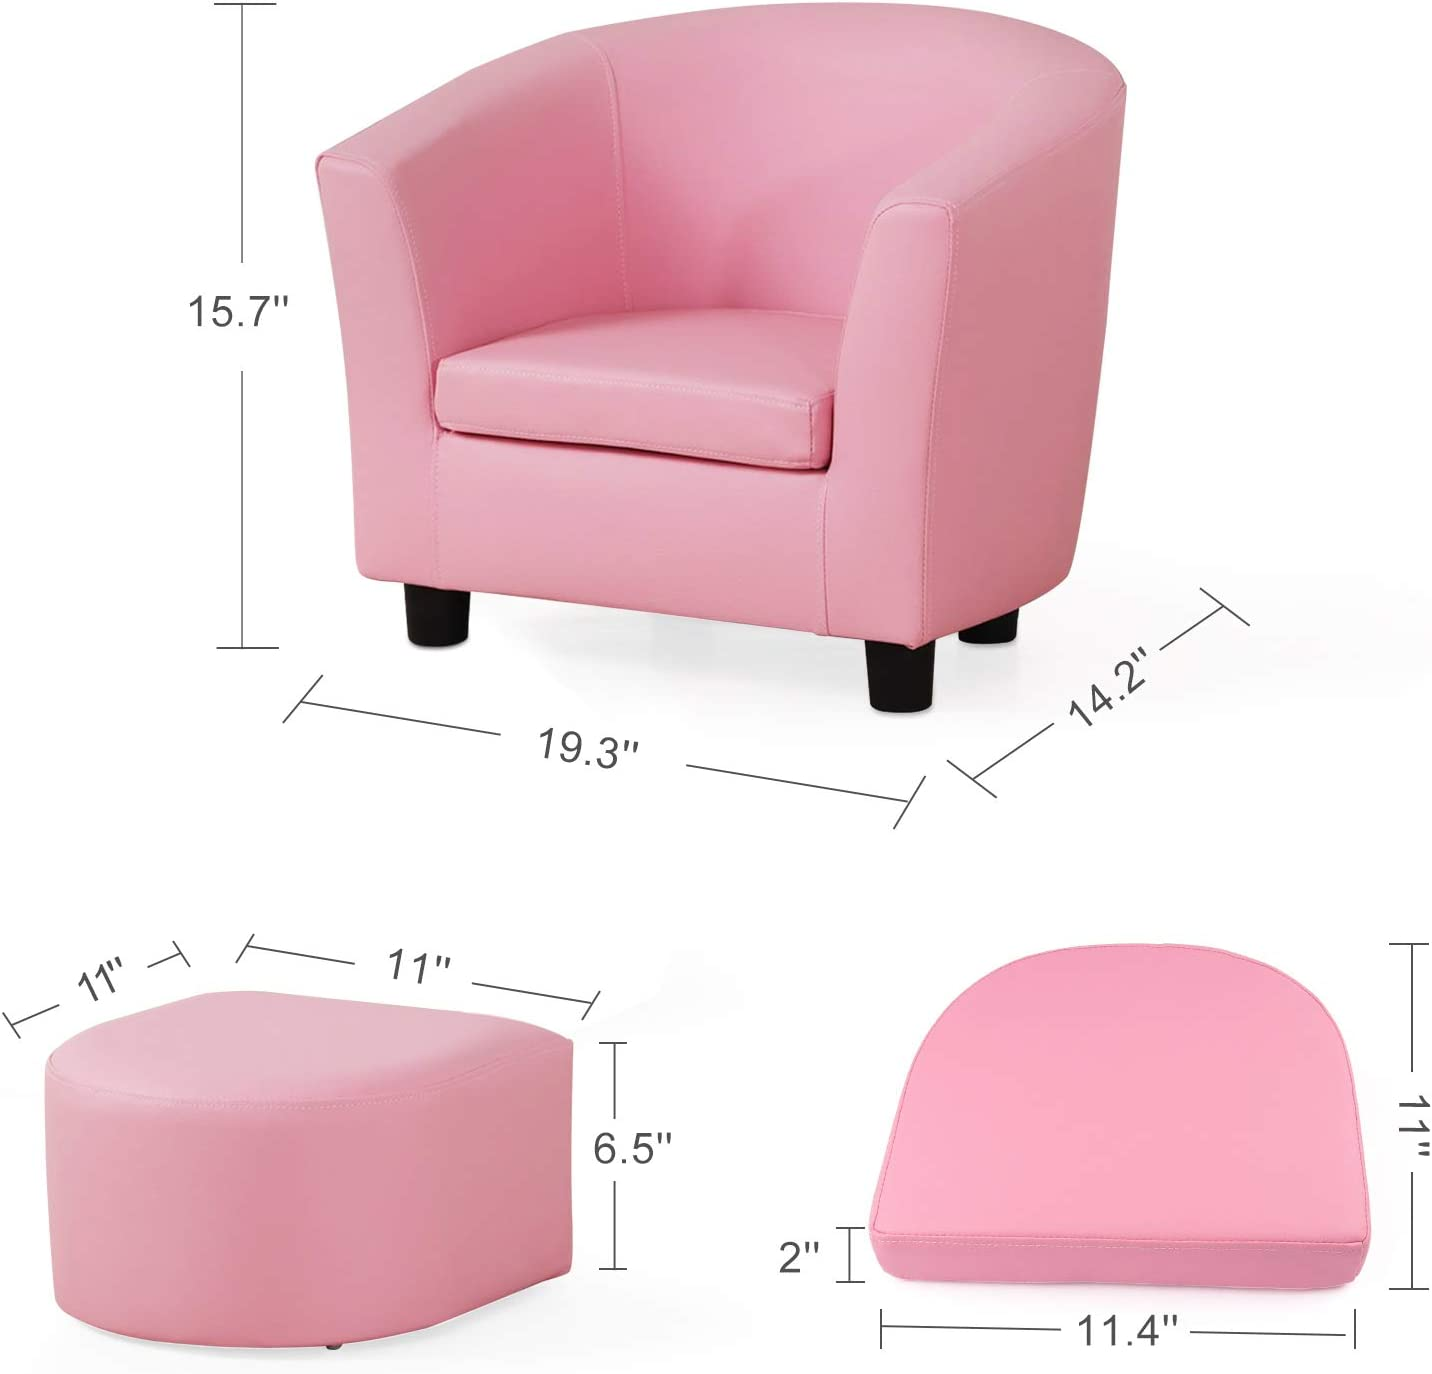 Kids Couch Fold Out Homasen 2 in 1 Kids Sofa Couch Bed Flip Open Sofa for Kids Girls Boys Bedroom Classroom Playroom